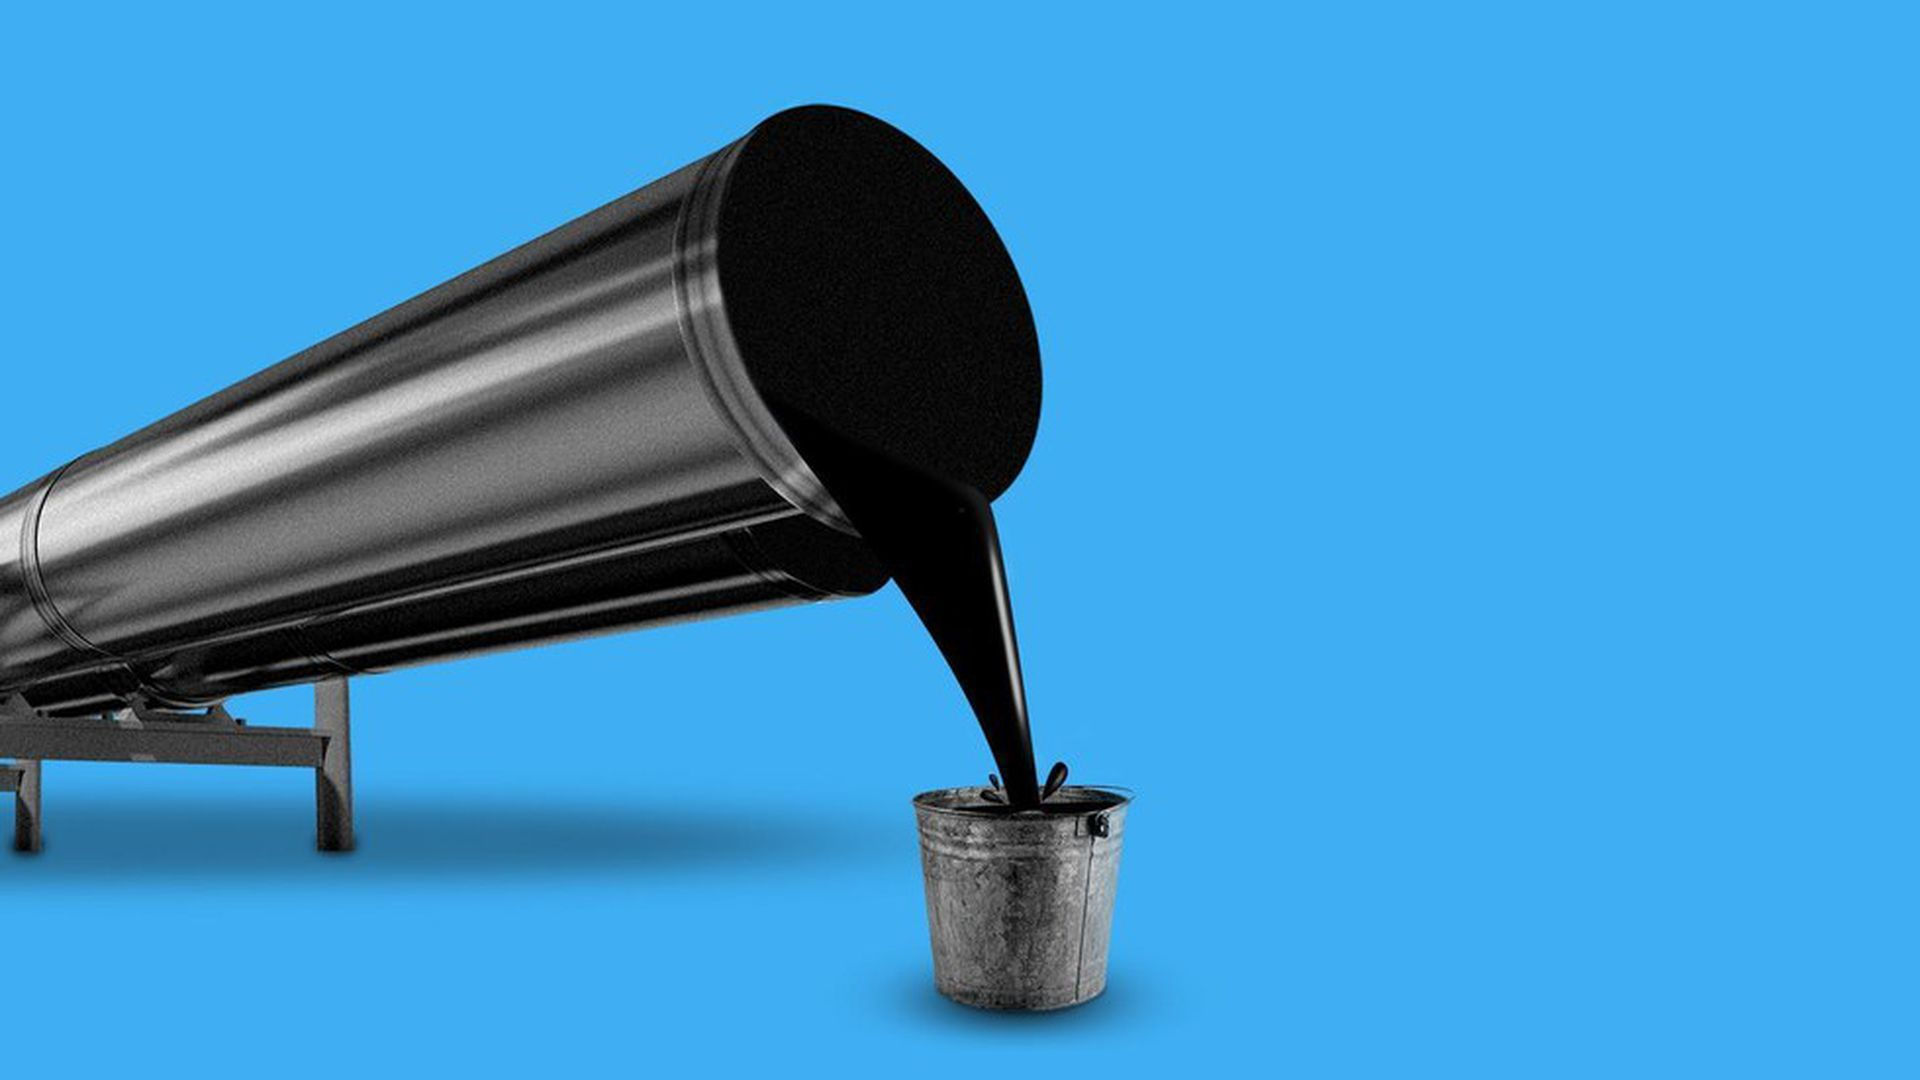 In this illustration, oil pours out of a metal container into a small bucket. There is a bright blue background.